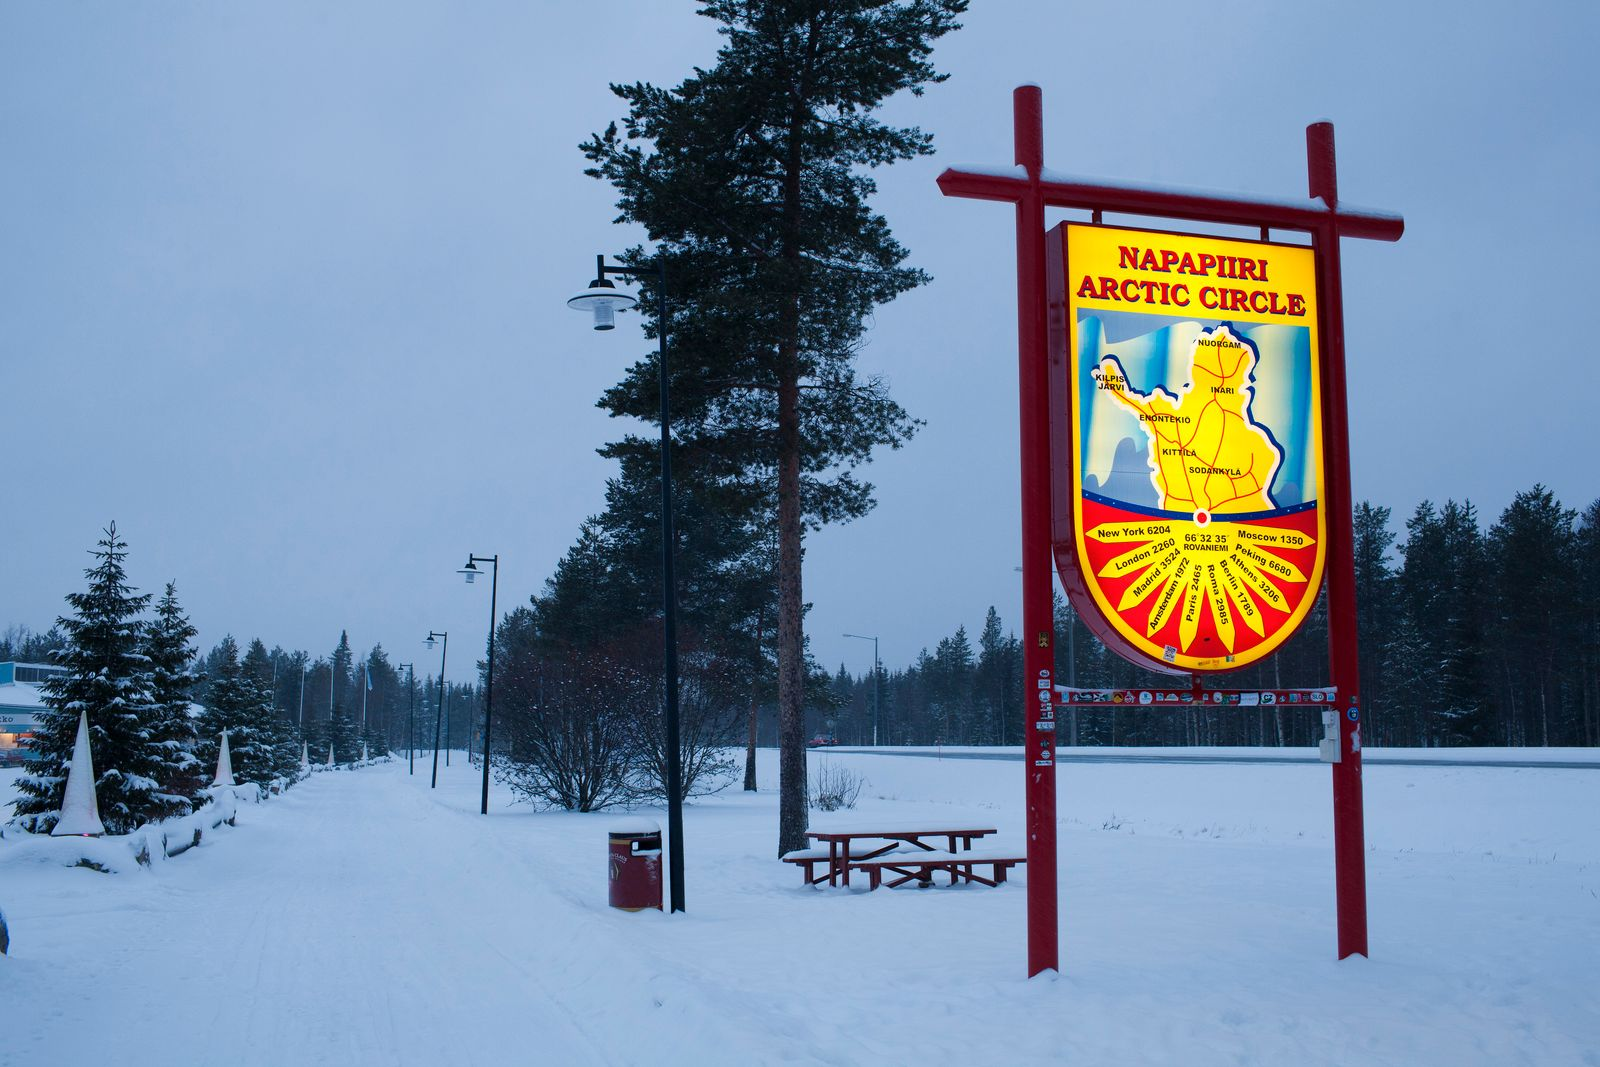 Santa's Post Office in Lapland, Finland